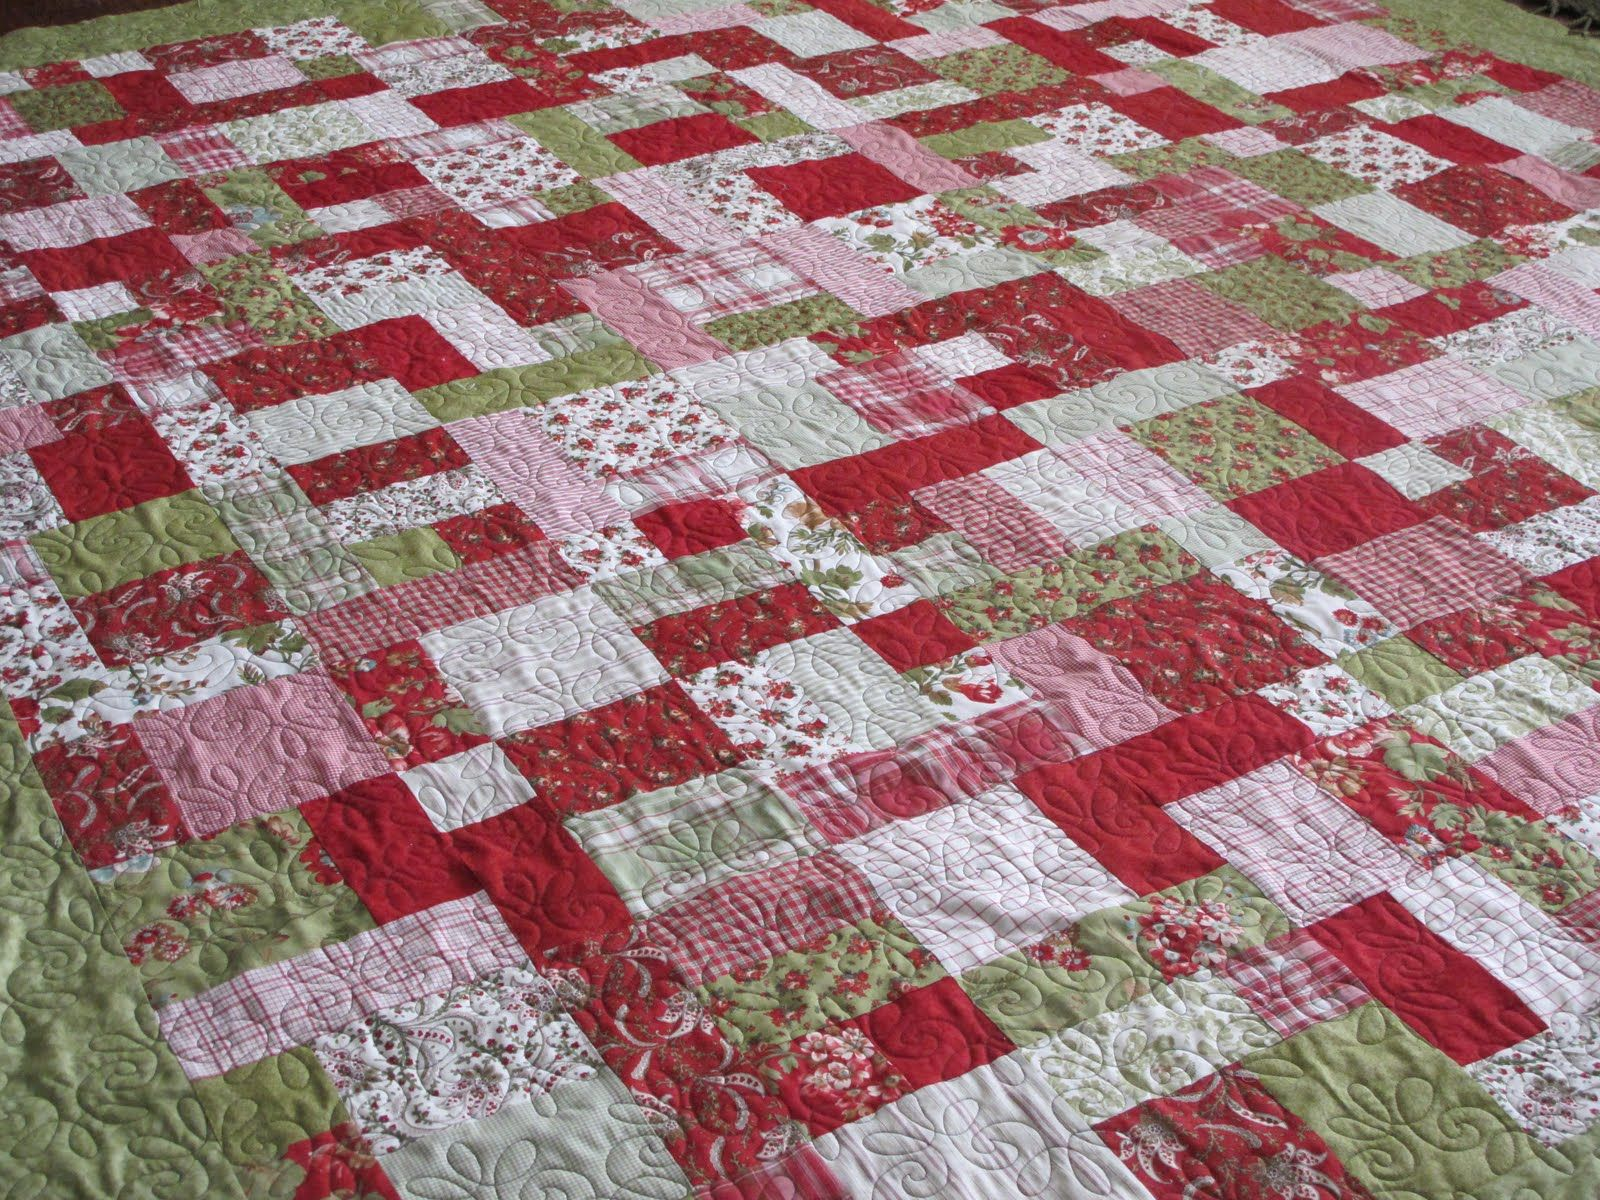 Yellow Brick Road Quilt Pattern Free Awesome Decoration